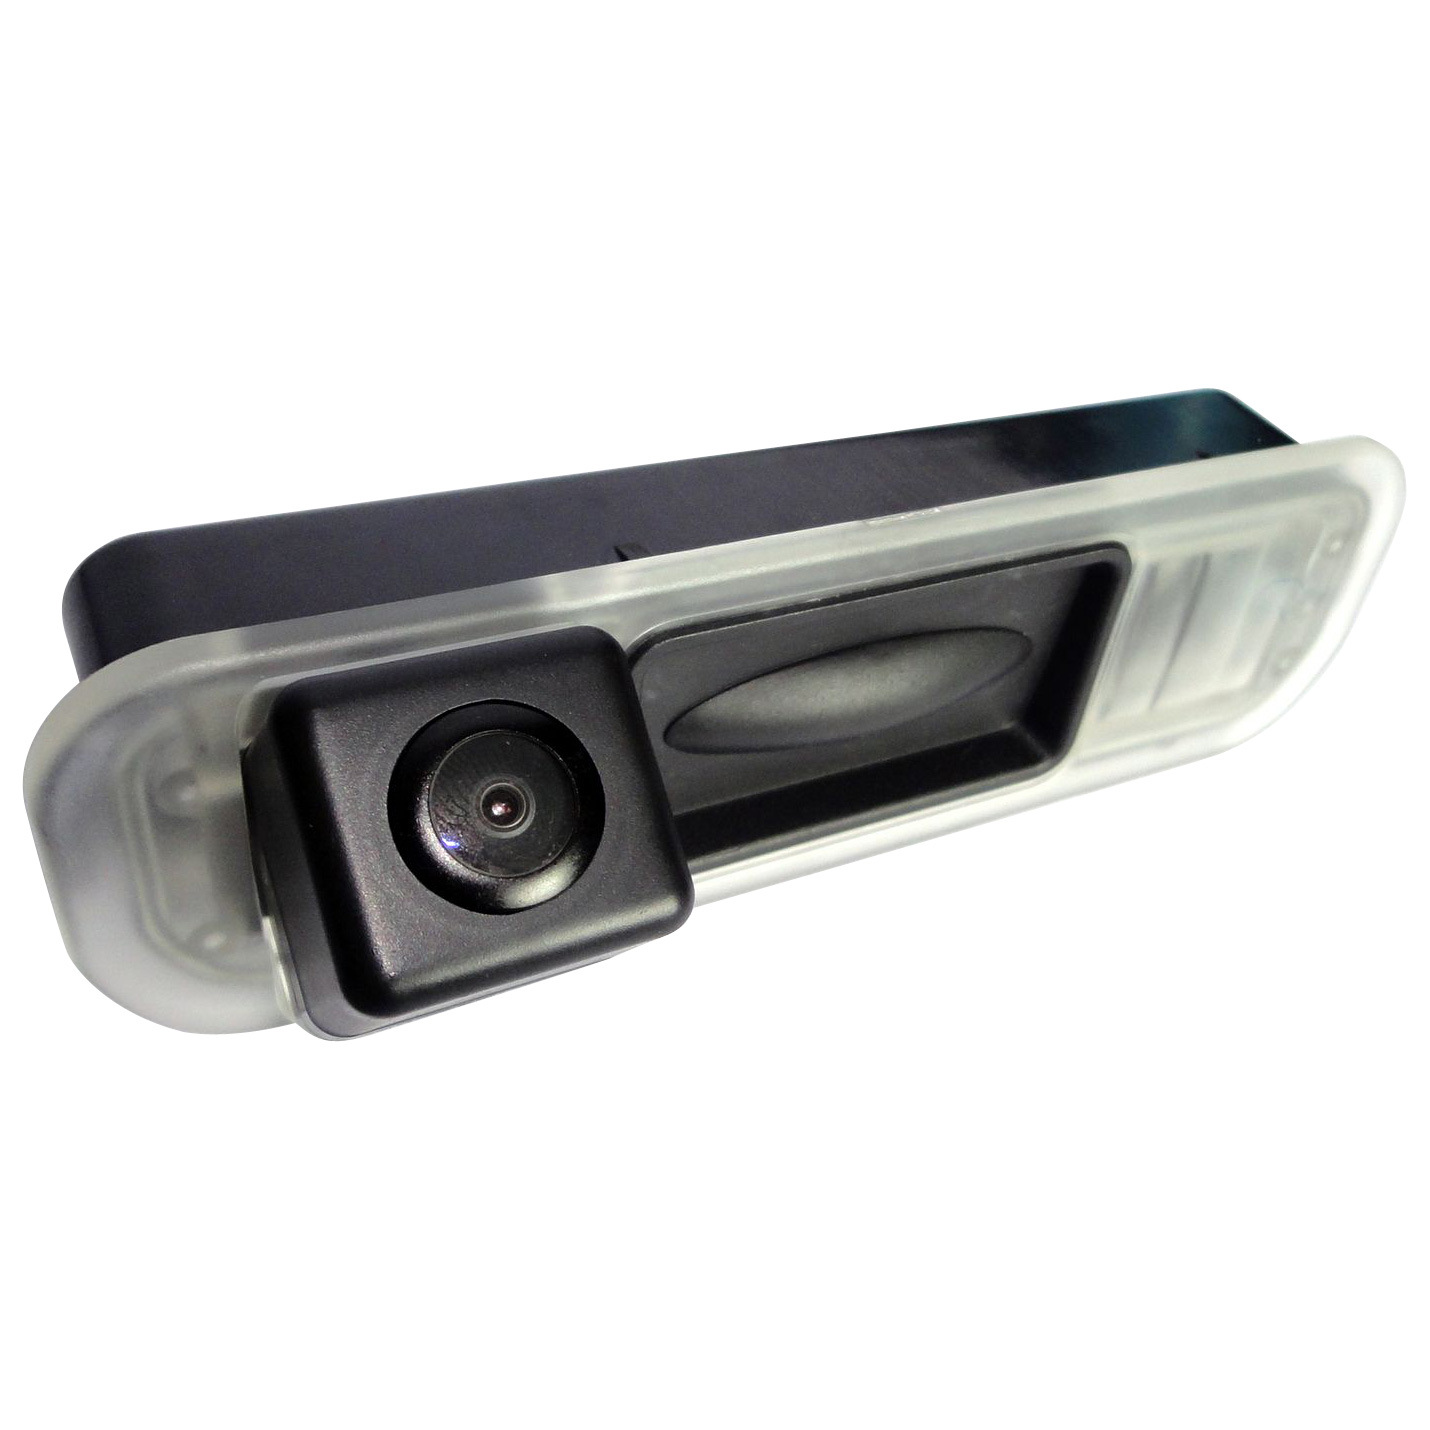 Rearview Camera for Ford 2012 Focus (CA-708)